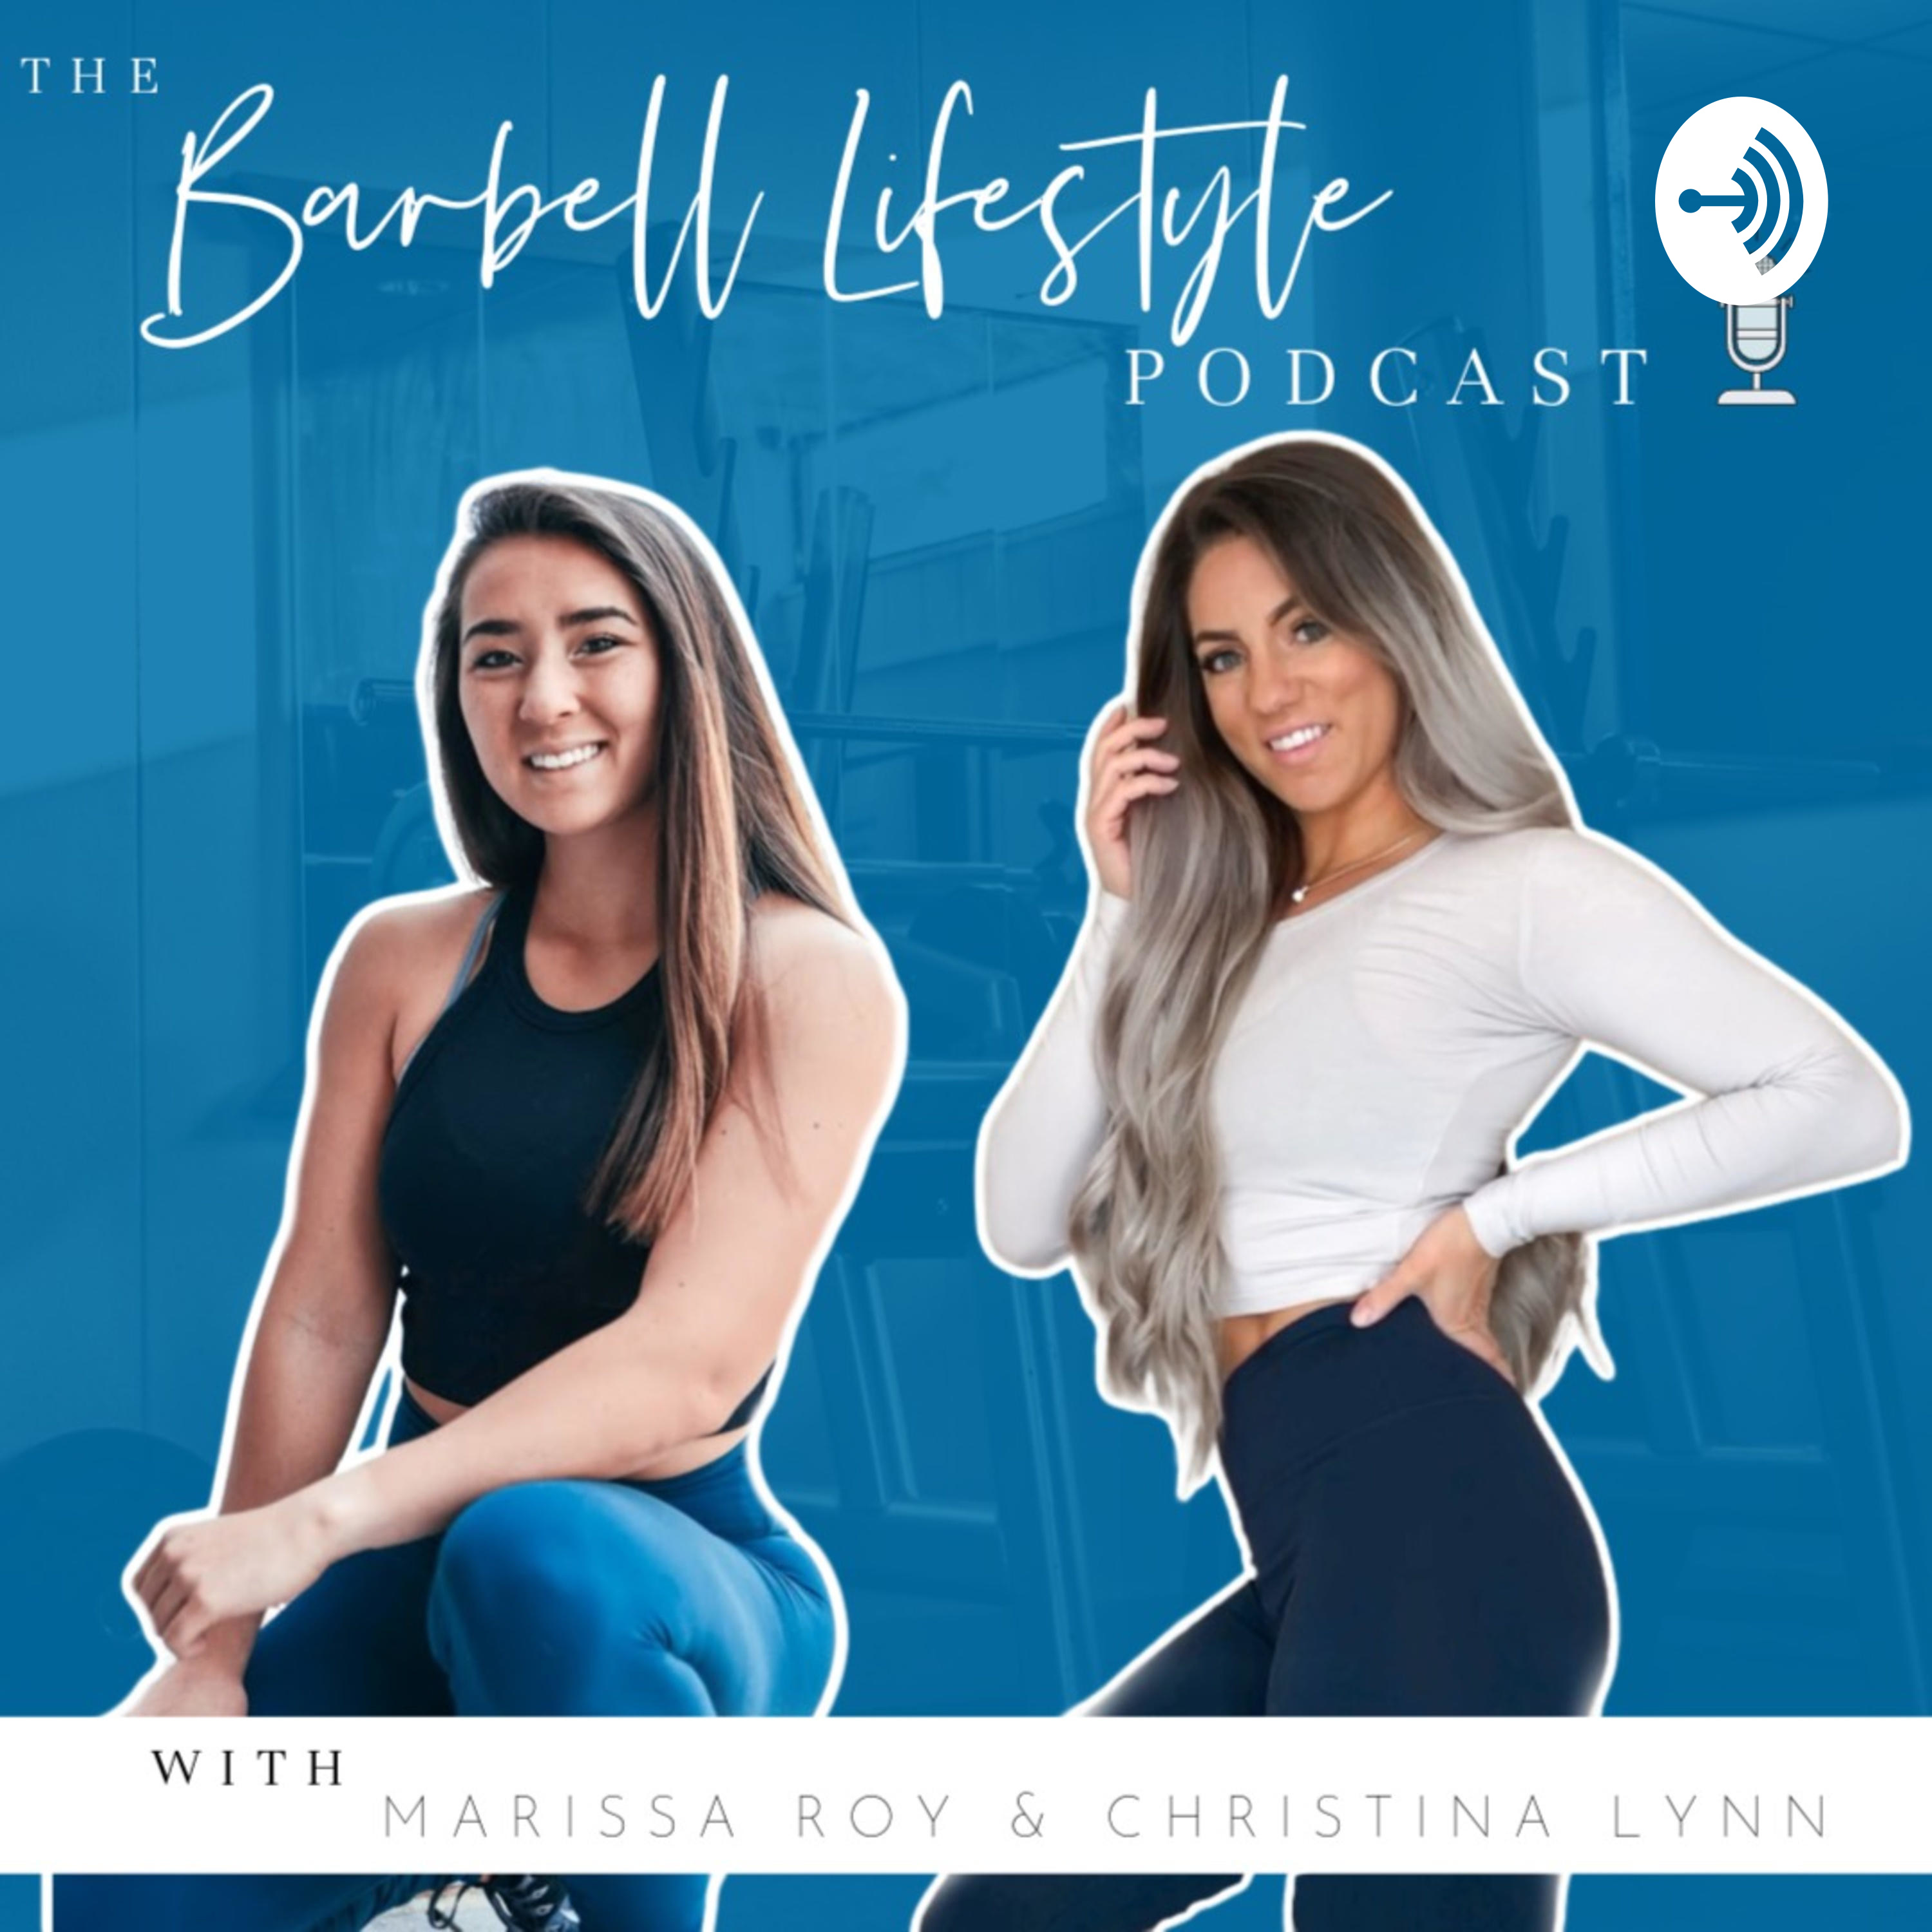 The Barbell Lifestyle Podcast